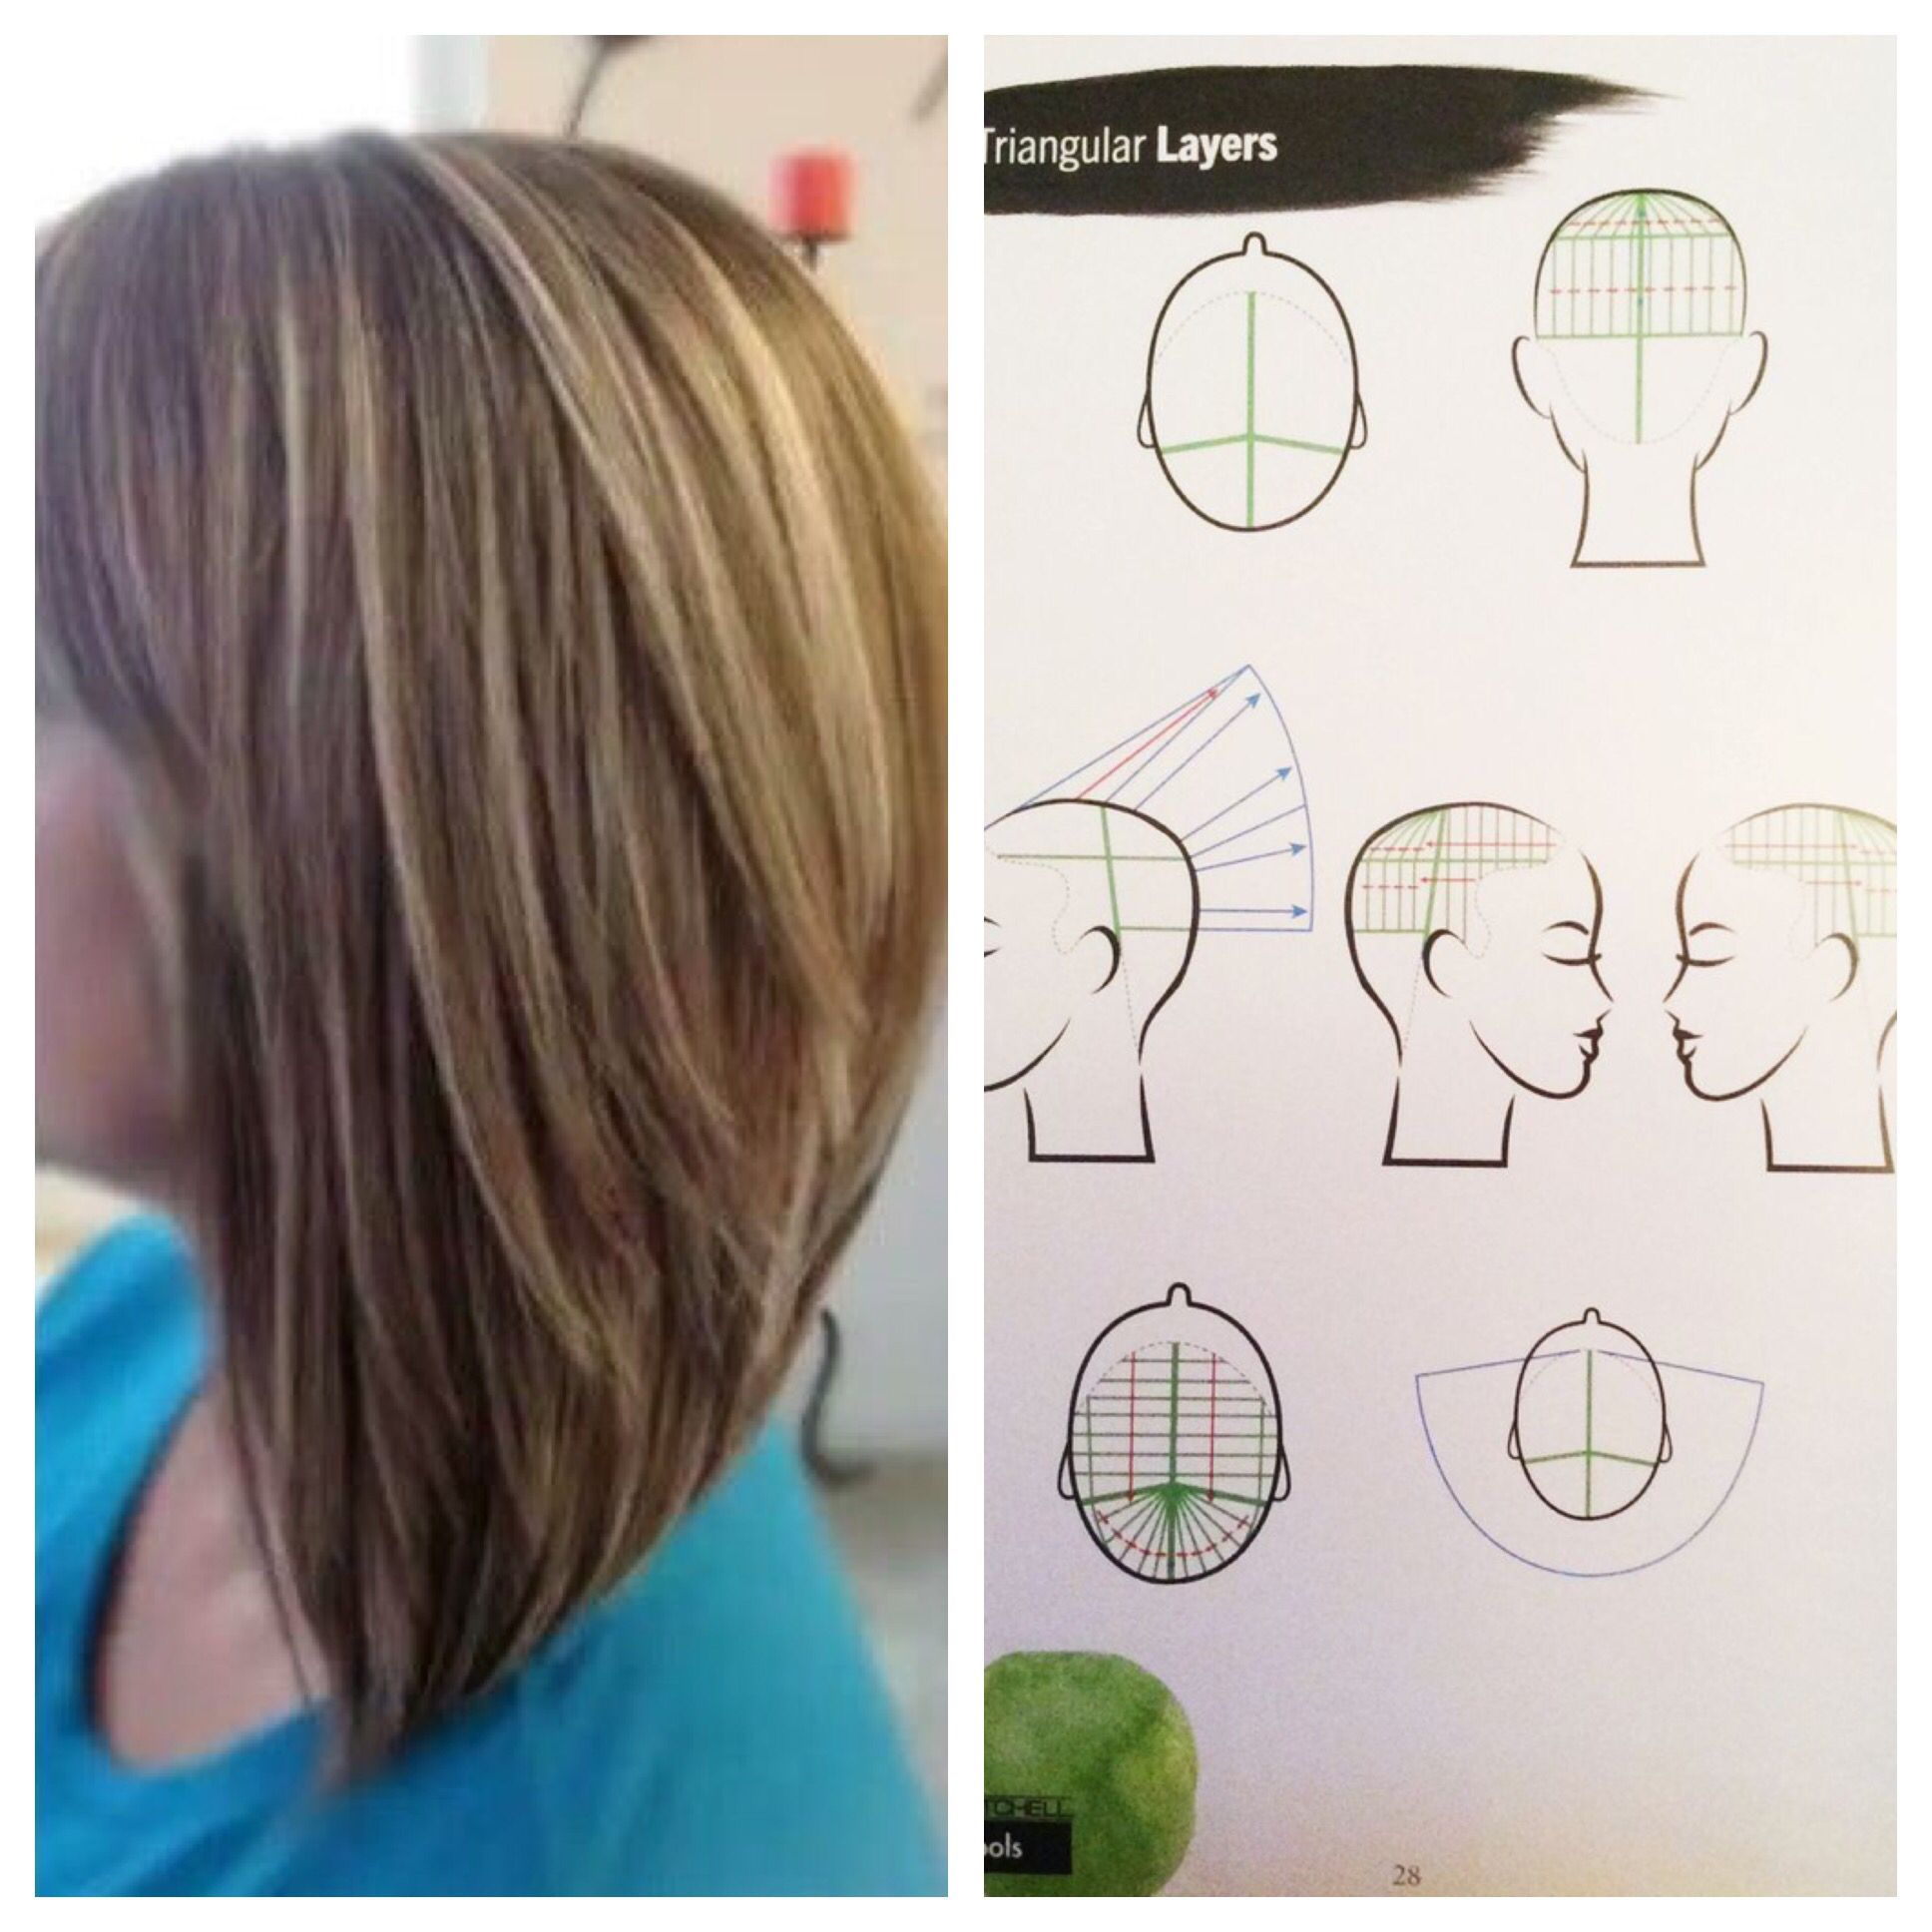 Triangular Layers Section Hair Into Four Part Sections